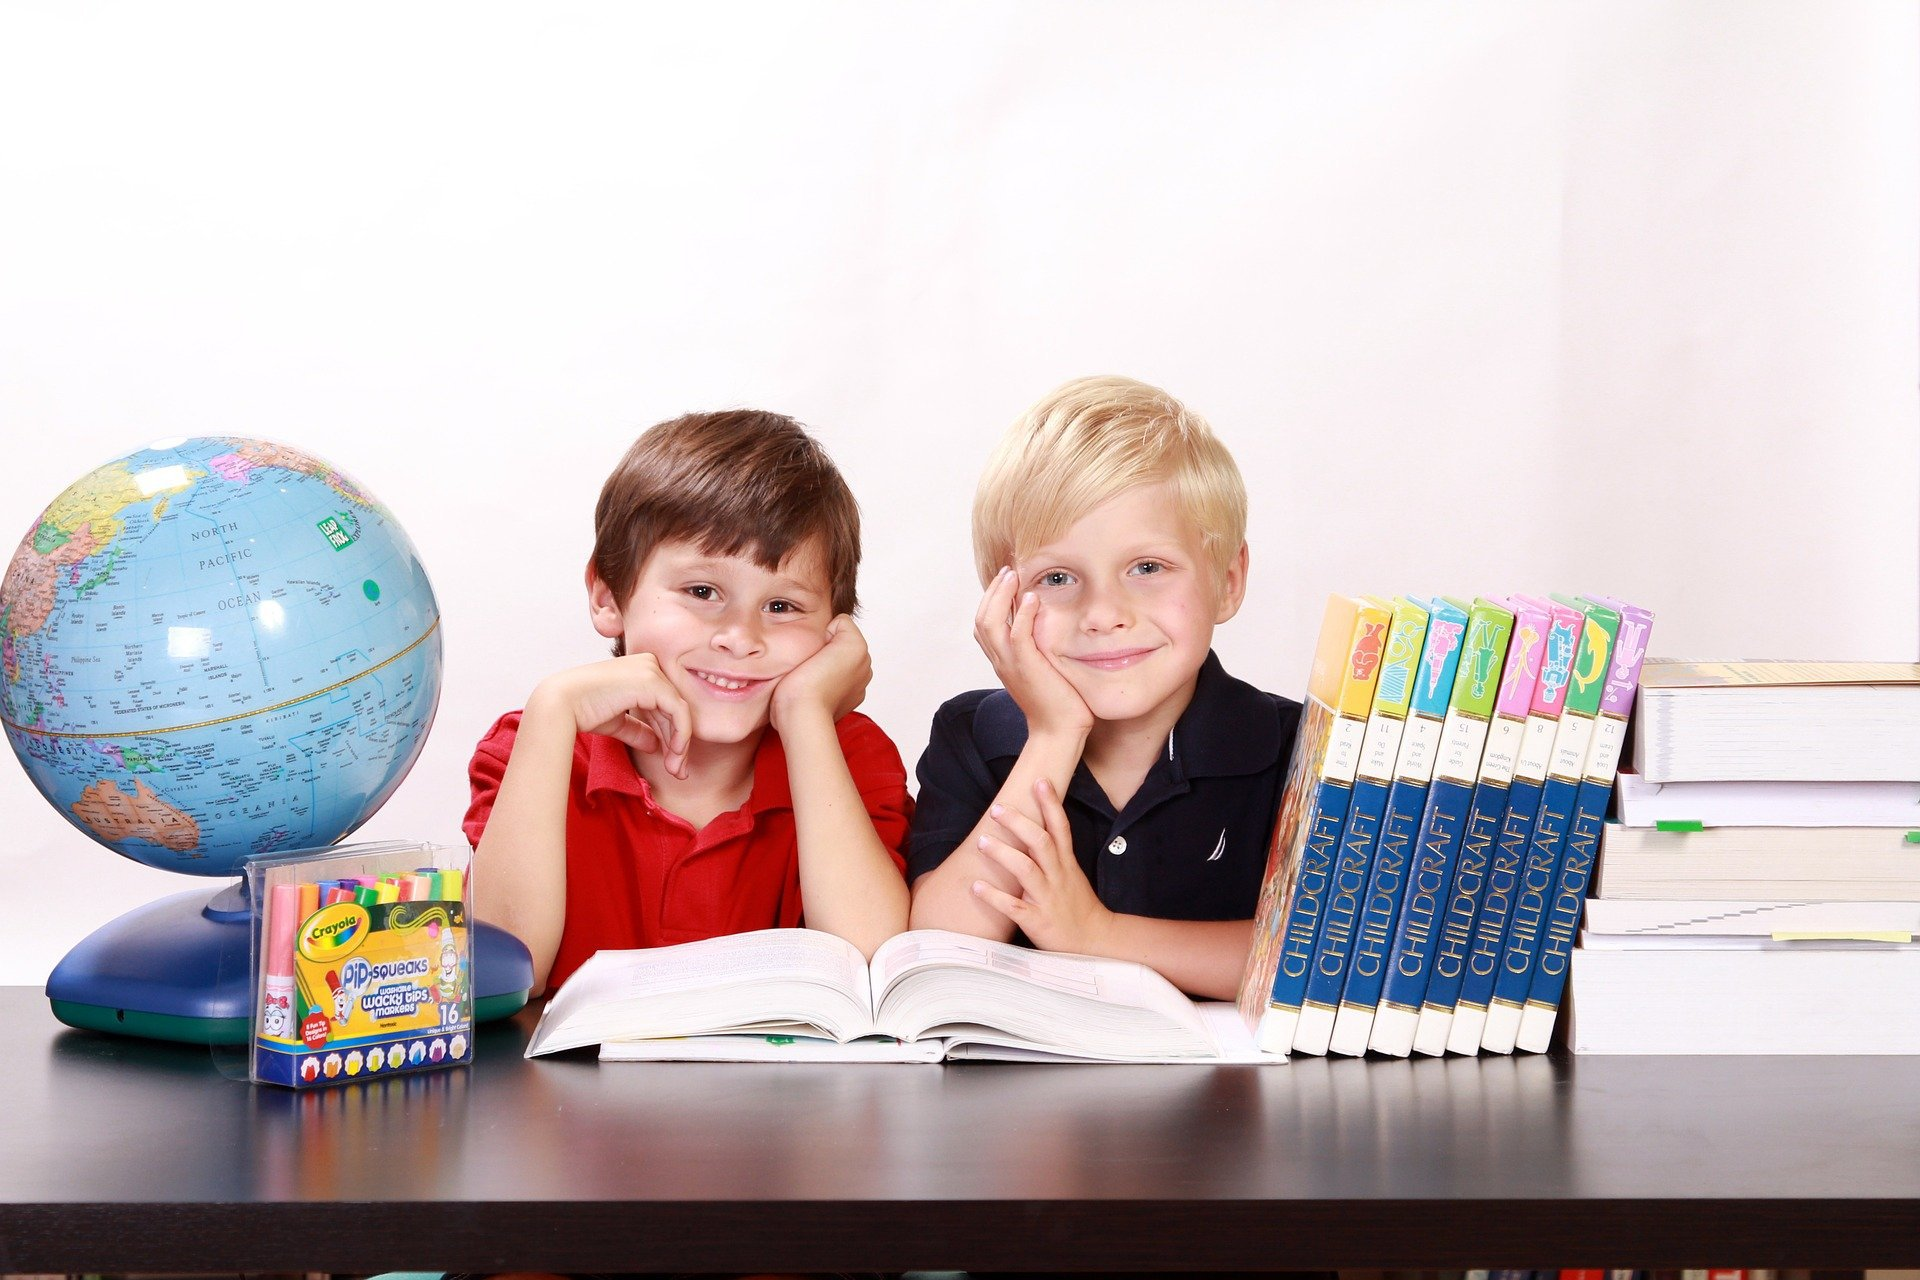 Less About Christianity: What's Proposed for the National Curriculum